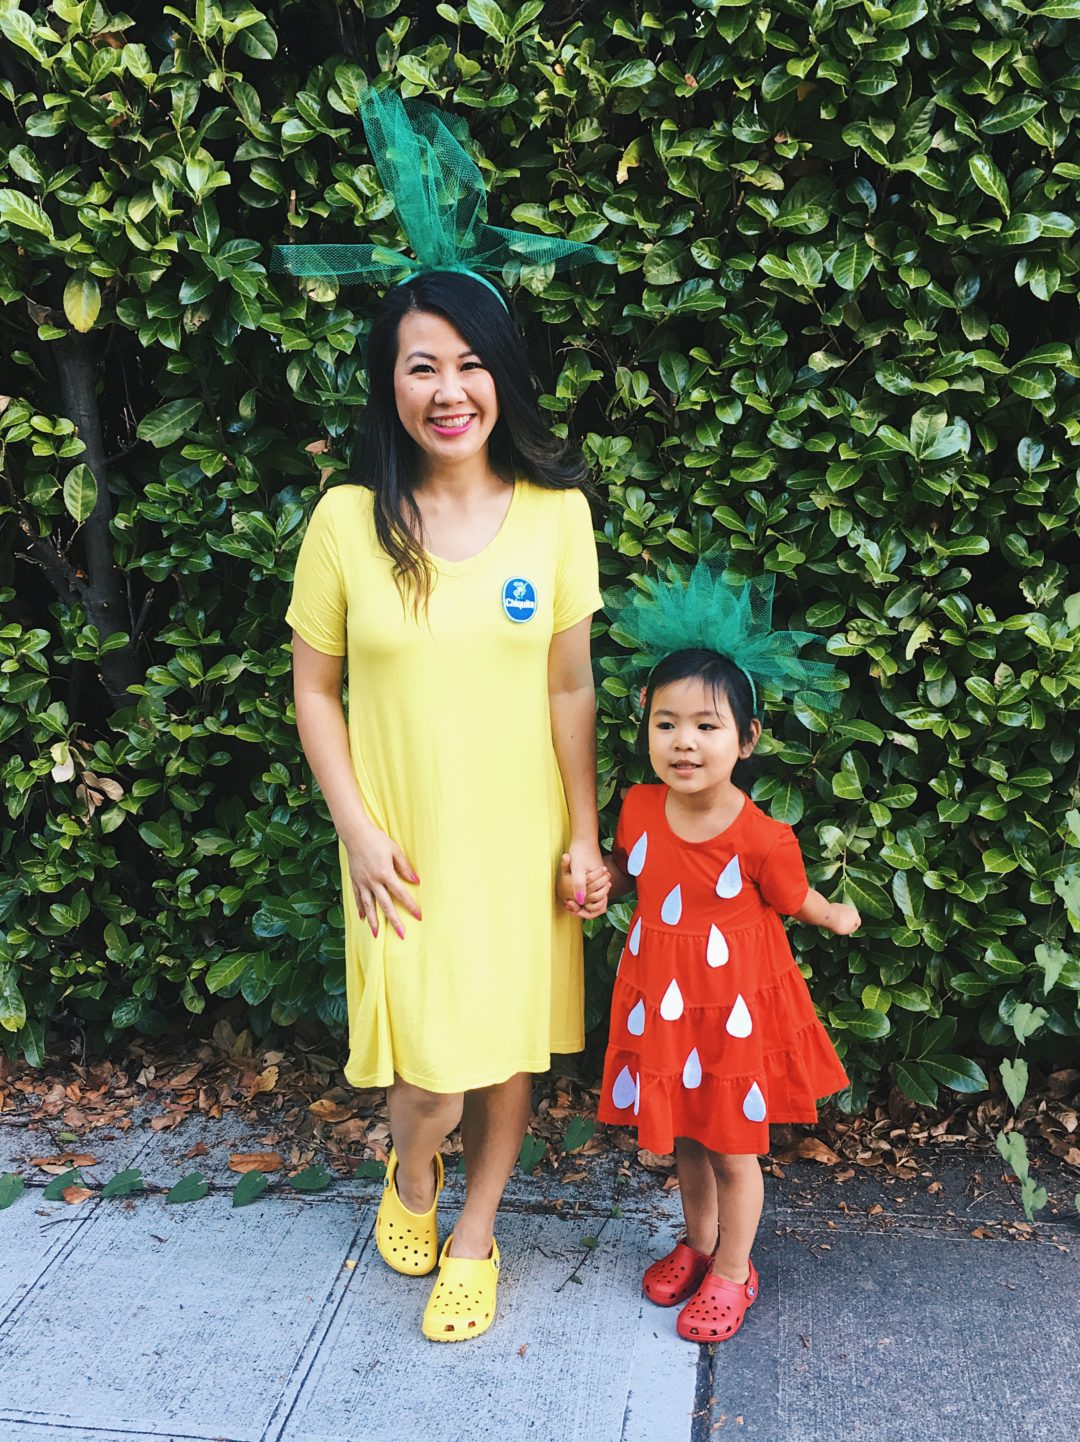 10 Adorably Awesome Halloween Costumes for Family, Kids, and Babies, including these DIY Mommy and Me Strawberry and Banana Halloween Costumes. Click through for plenty of fun DIY costumes for families. #halloween #halloweencostumeideas #familyhalloweencostume #familyhalloweencostumeideas | glitterinc.com | @glitterinc